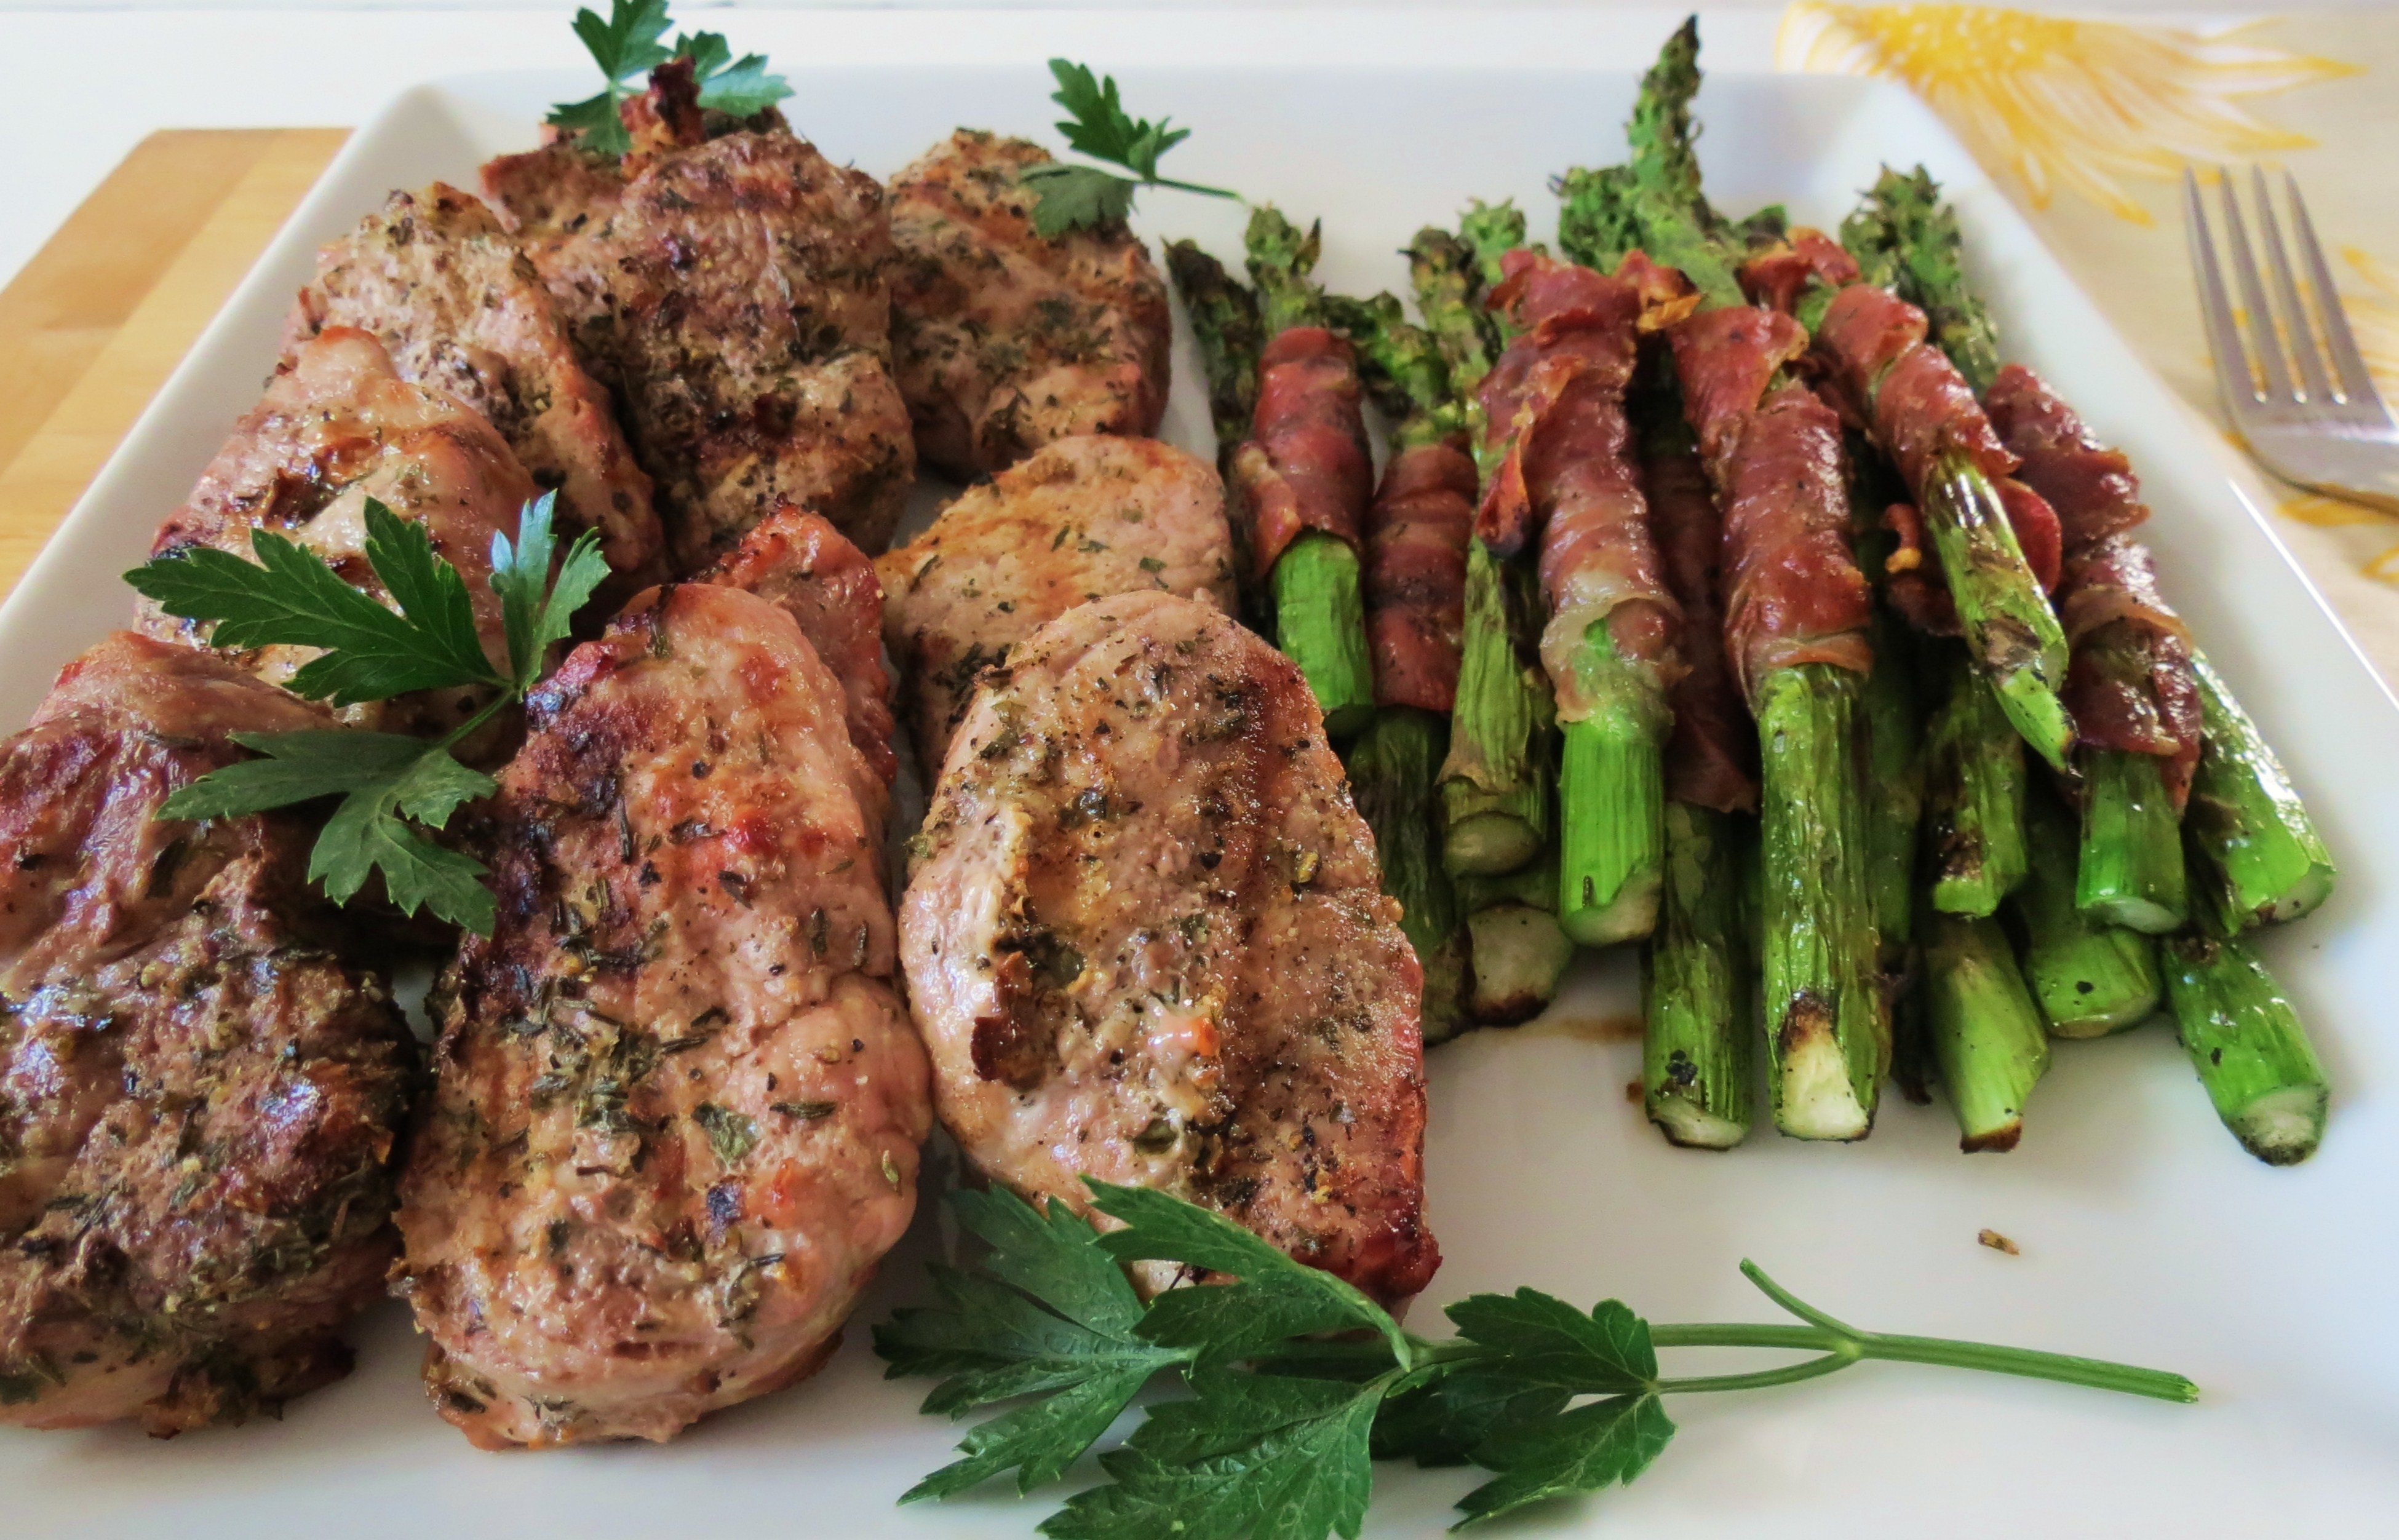 Grilled Pork Medallions with Asparagus Wrapped Prosciutto